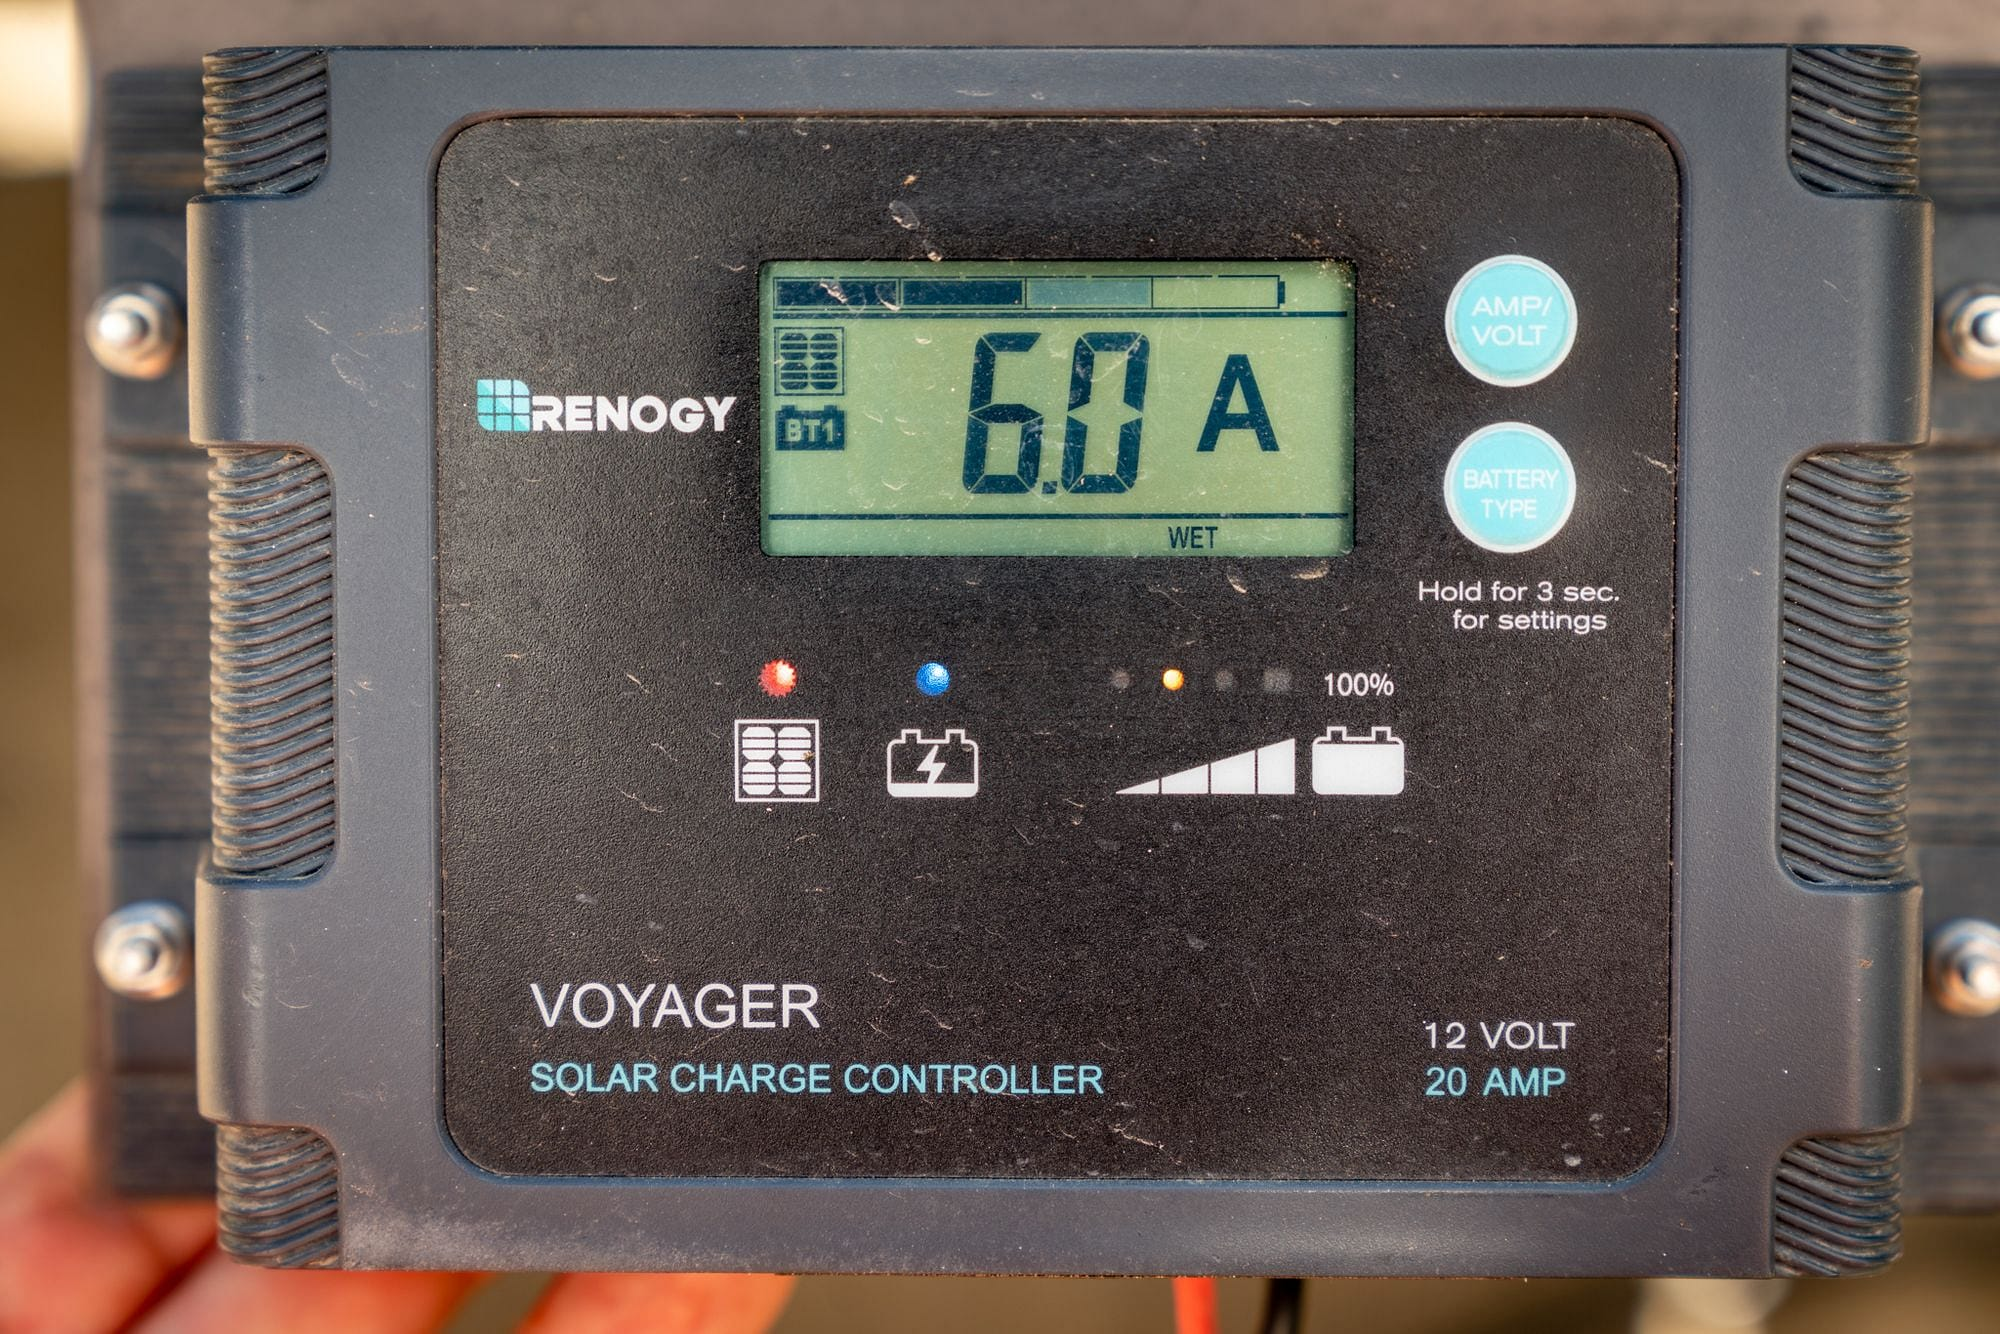 Voyager Solar Charge Controller